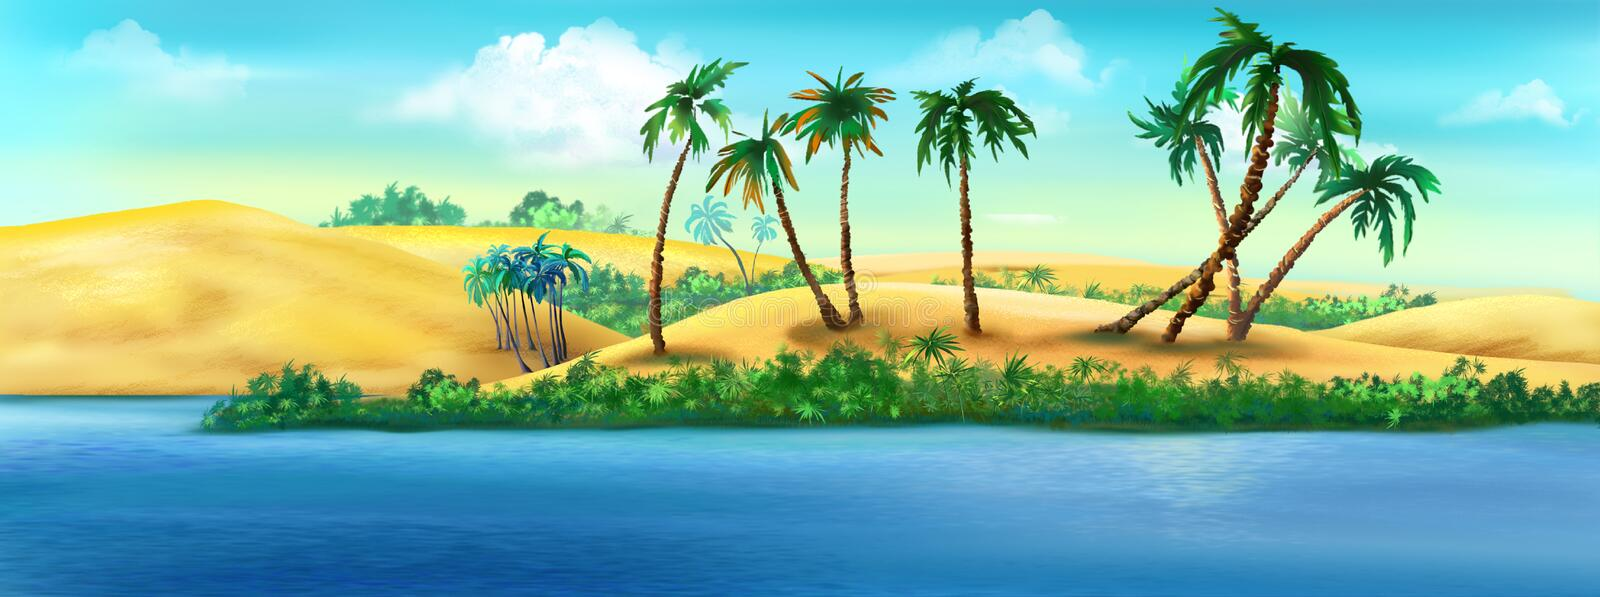 Coast of Egypt from the Nile River. Digital painting of the view of the coast of Egypt from the Nile River vector illustration